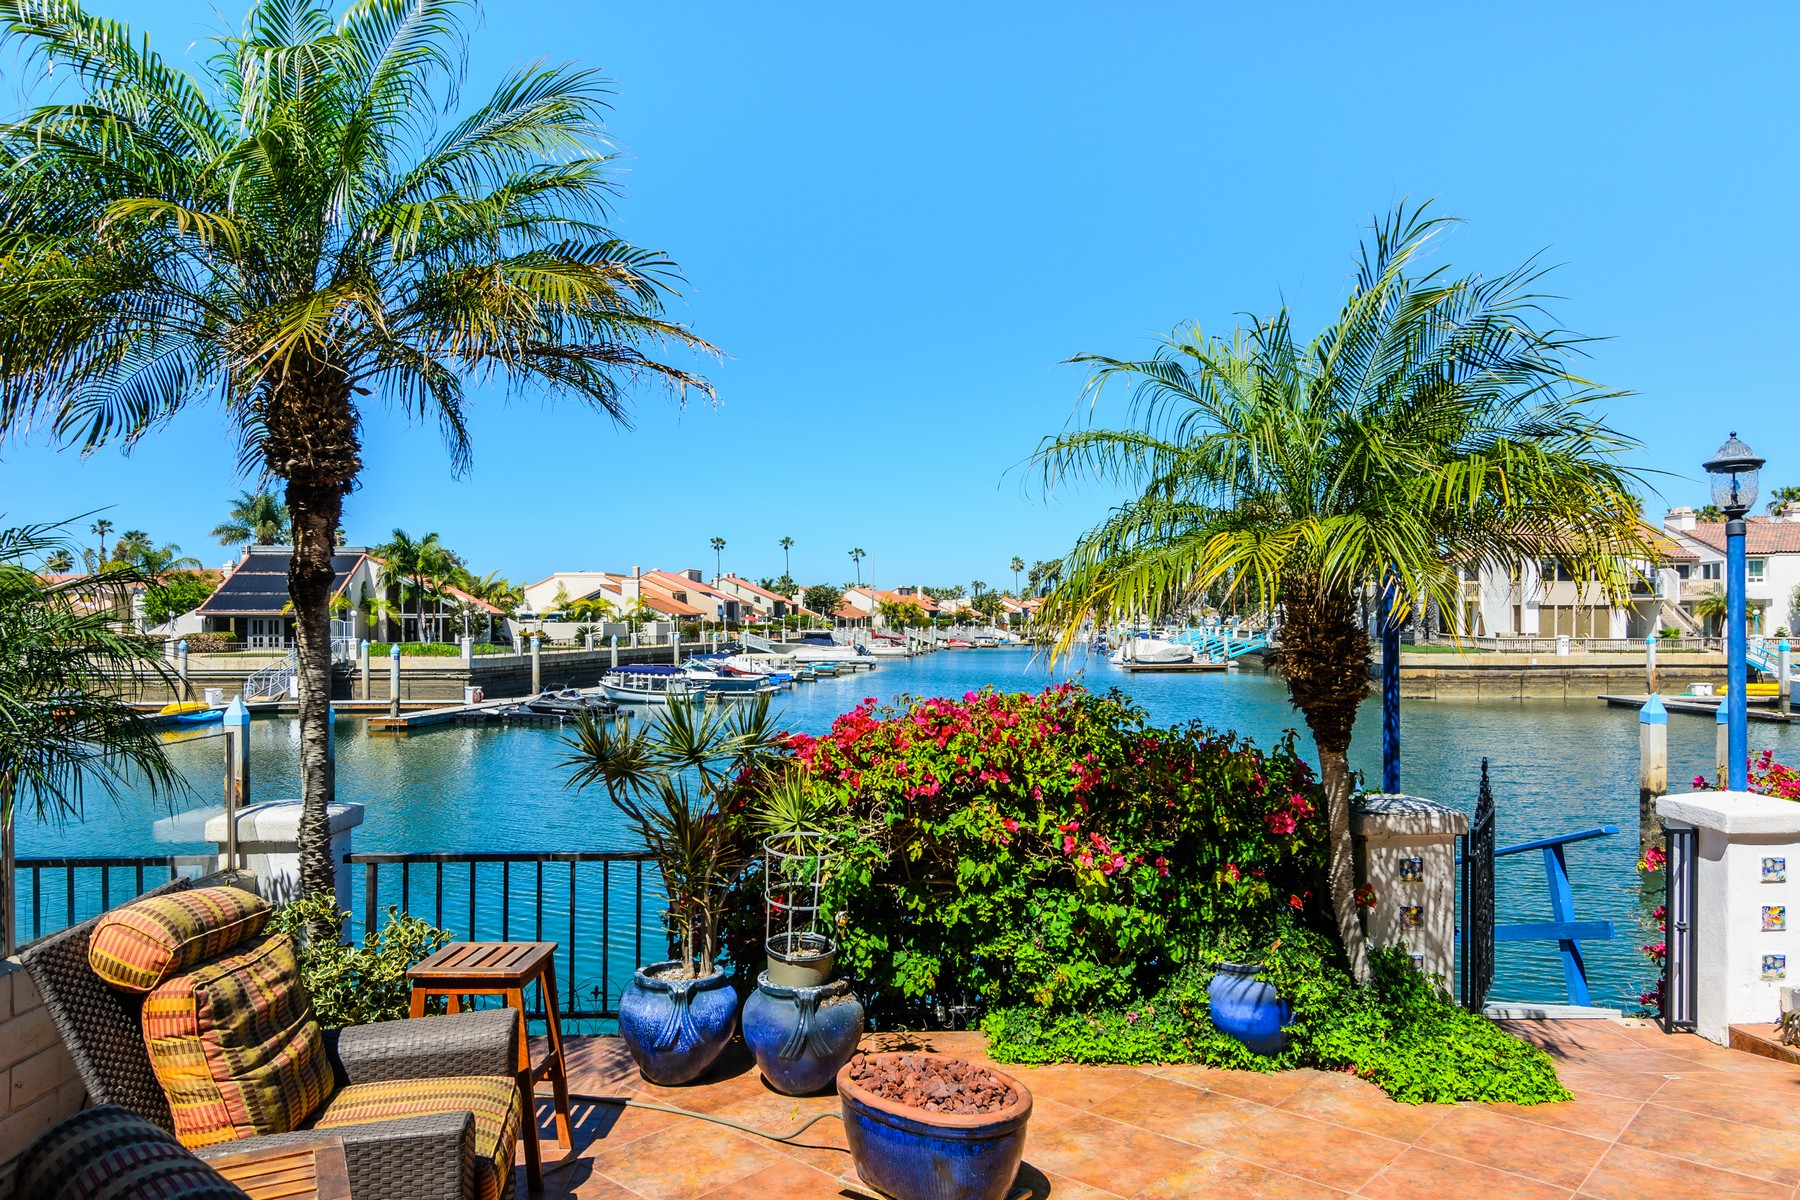 Single Family Home for Sale at 37 Blue Anchor Cay Coronado, California 92118 United States